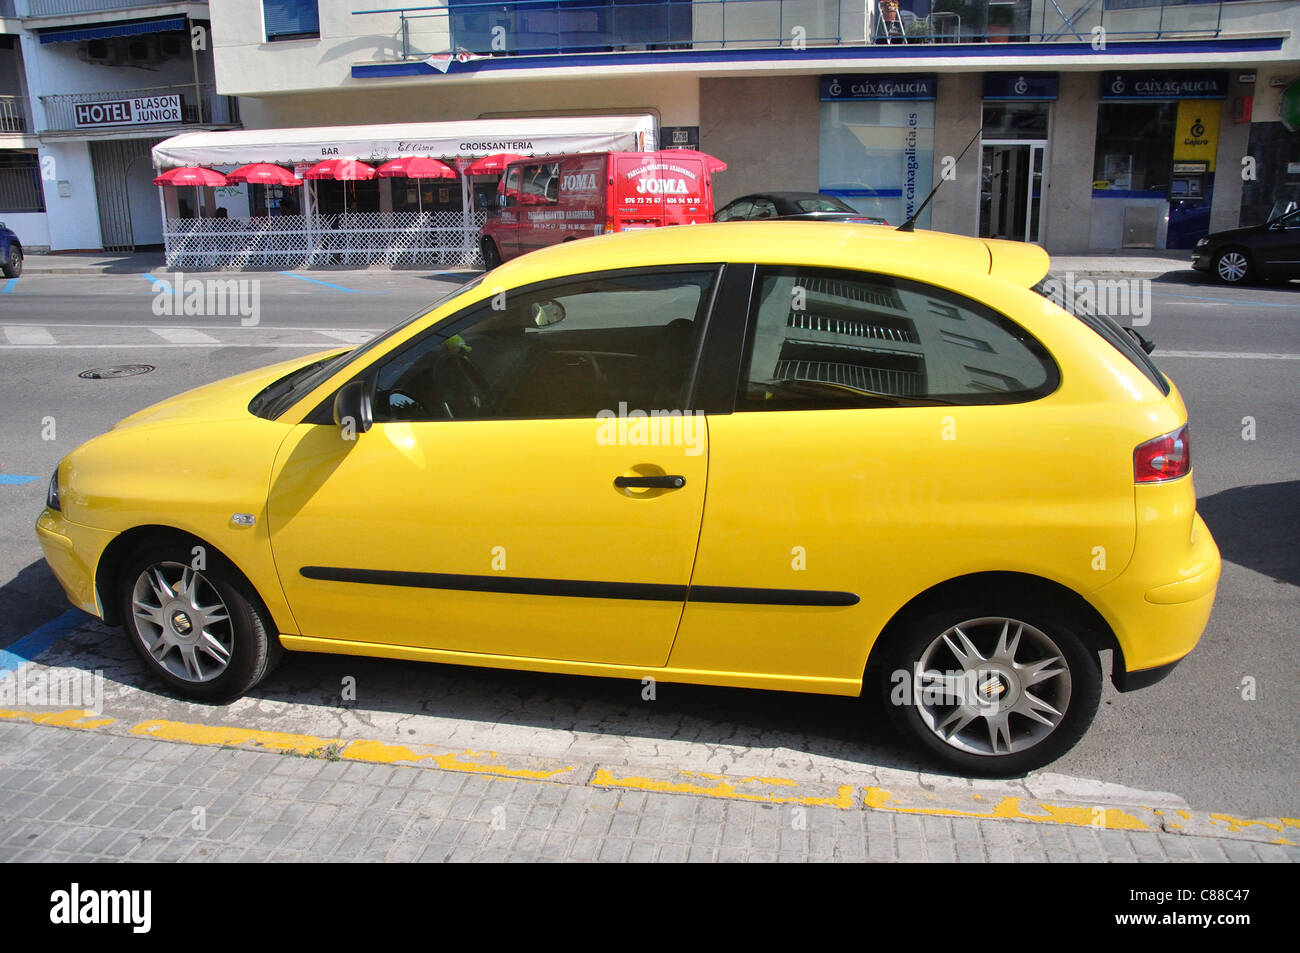 seat ibiza car stockfotos seat ibiza car bilder alamy. Black Bedroom Furniture Sets. Home Design Ideas